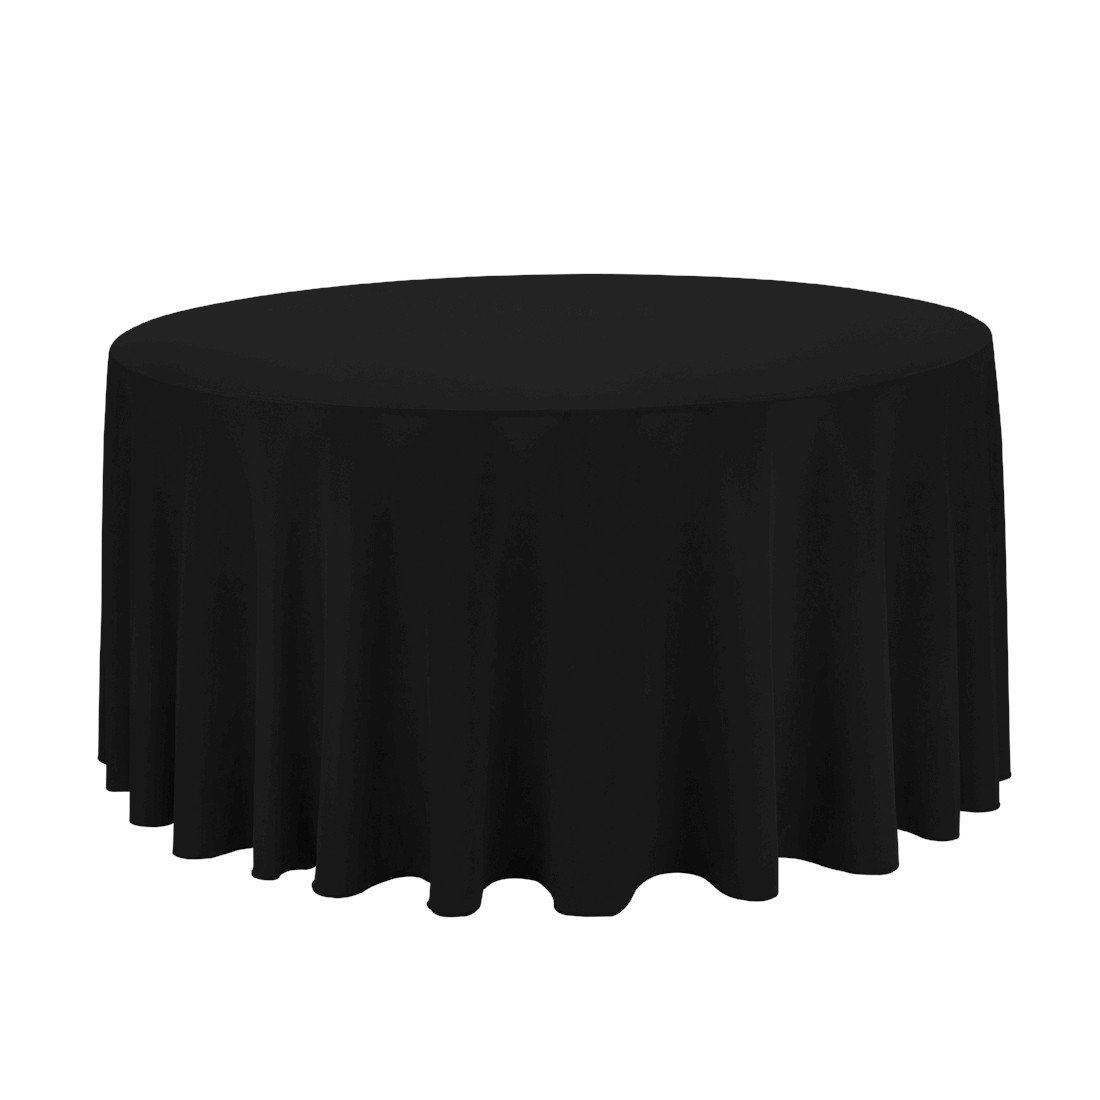 Craft & Party Polyester Table Cloth 120'' Round (Black) by Craft & Party (Image #1)